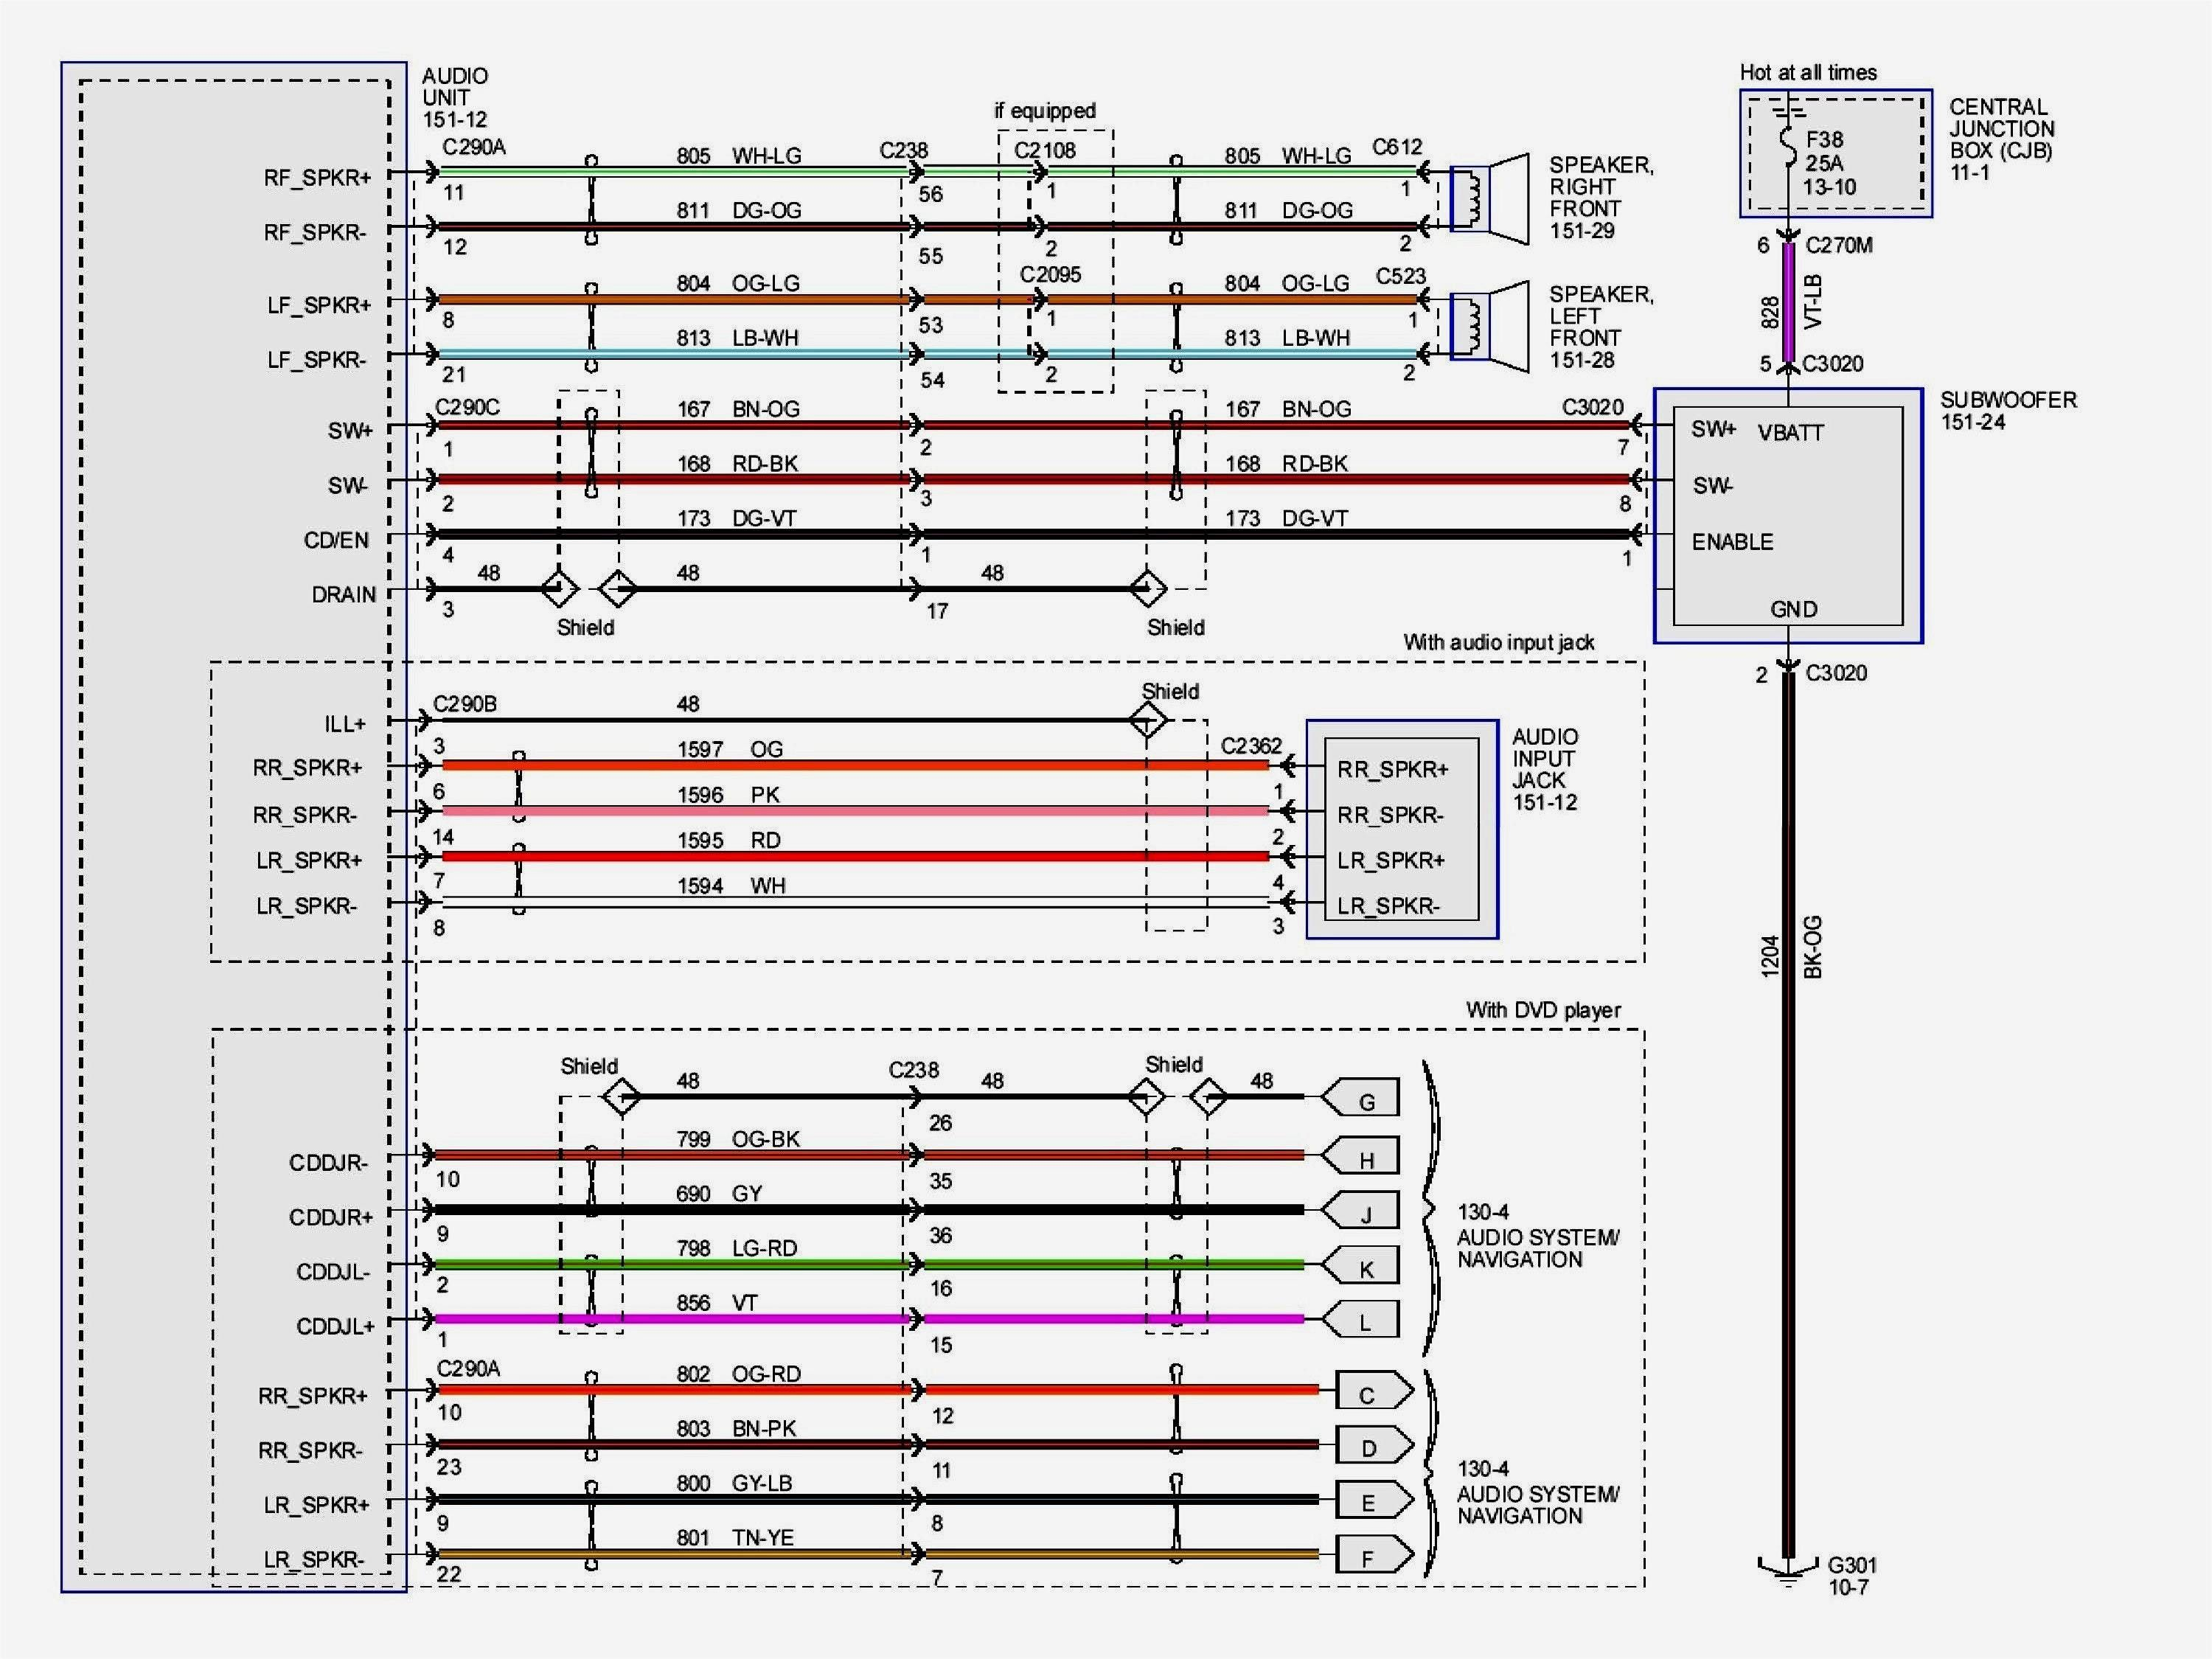 2007 Ford Explorer Wiring Diagram In 2020 Electrical Wiring Diagram Trailer Wiring Diagram Diagram